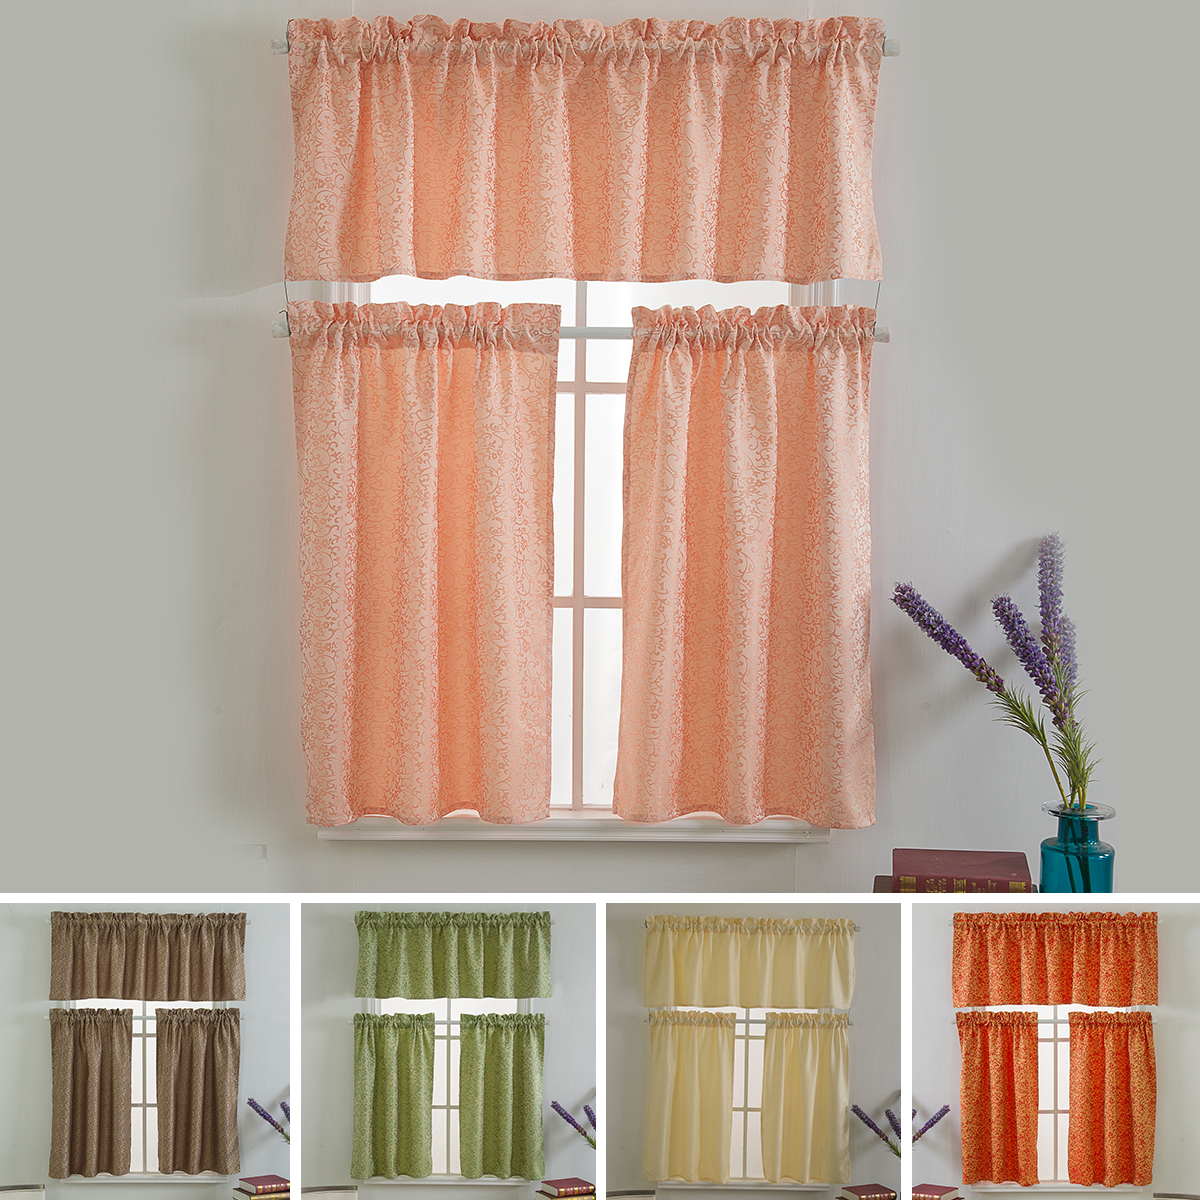 Details about New Ready Made Kitchen Window Voile Cafe Net Short Curtains  Panel Valance Decor